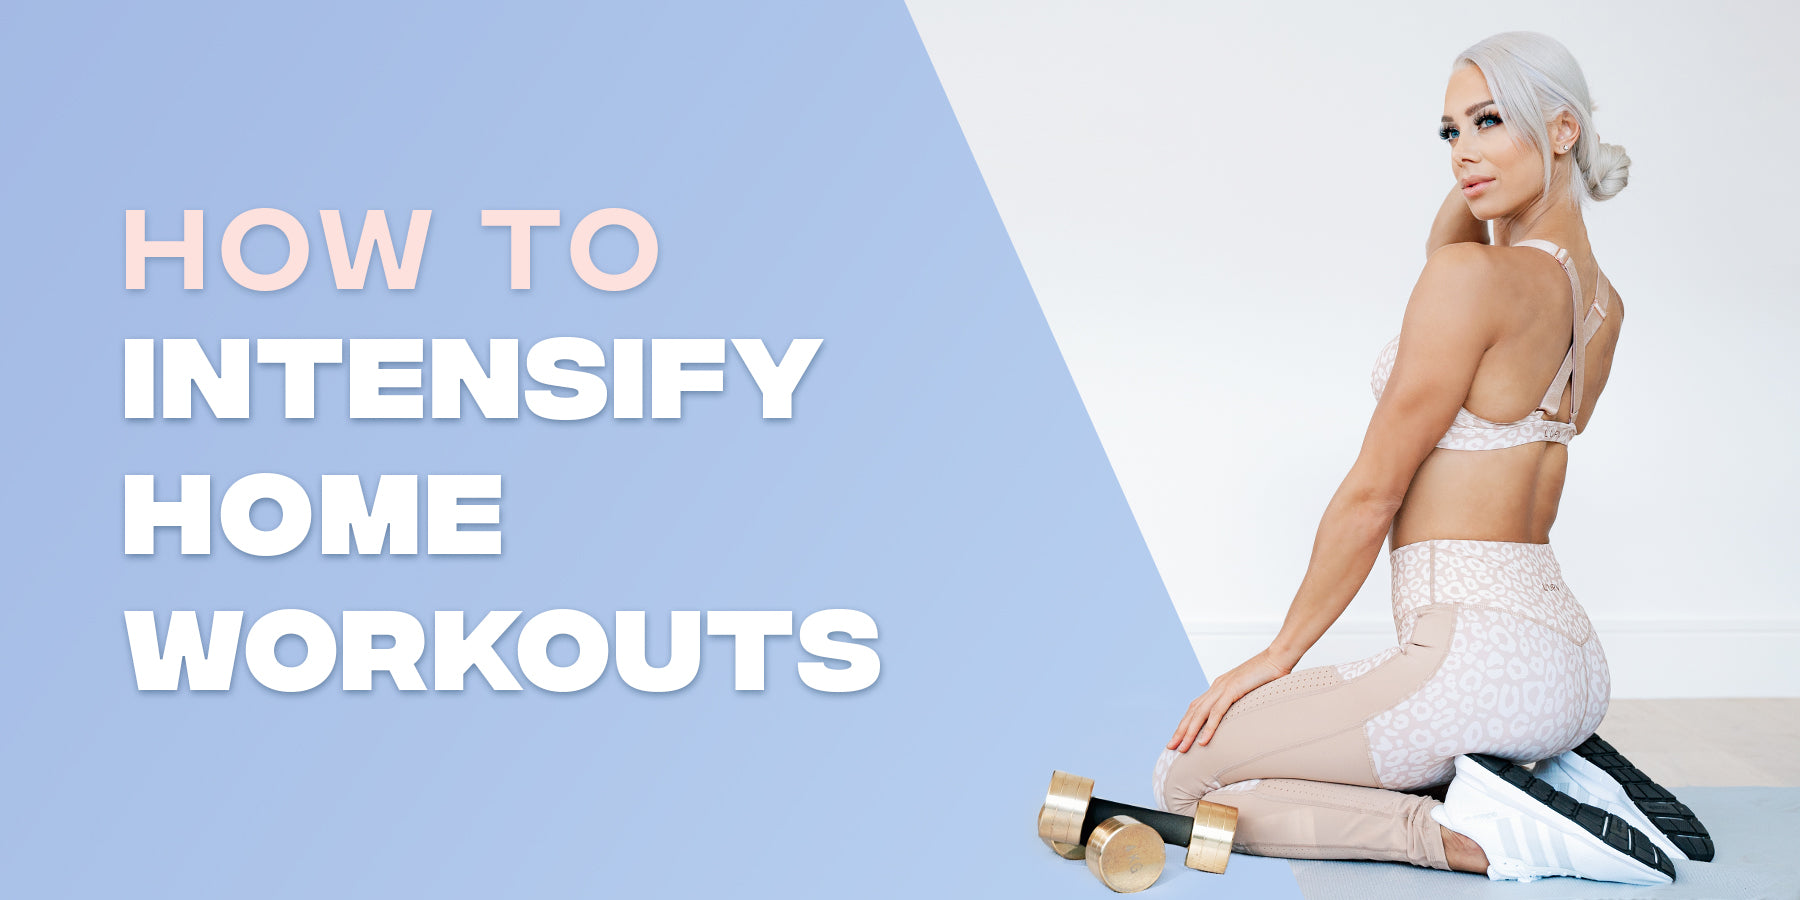 How To Intensify Home Workouts